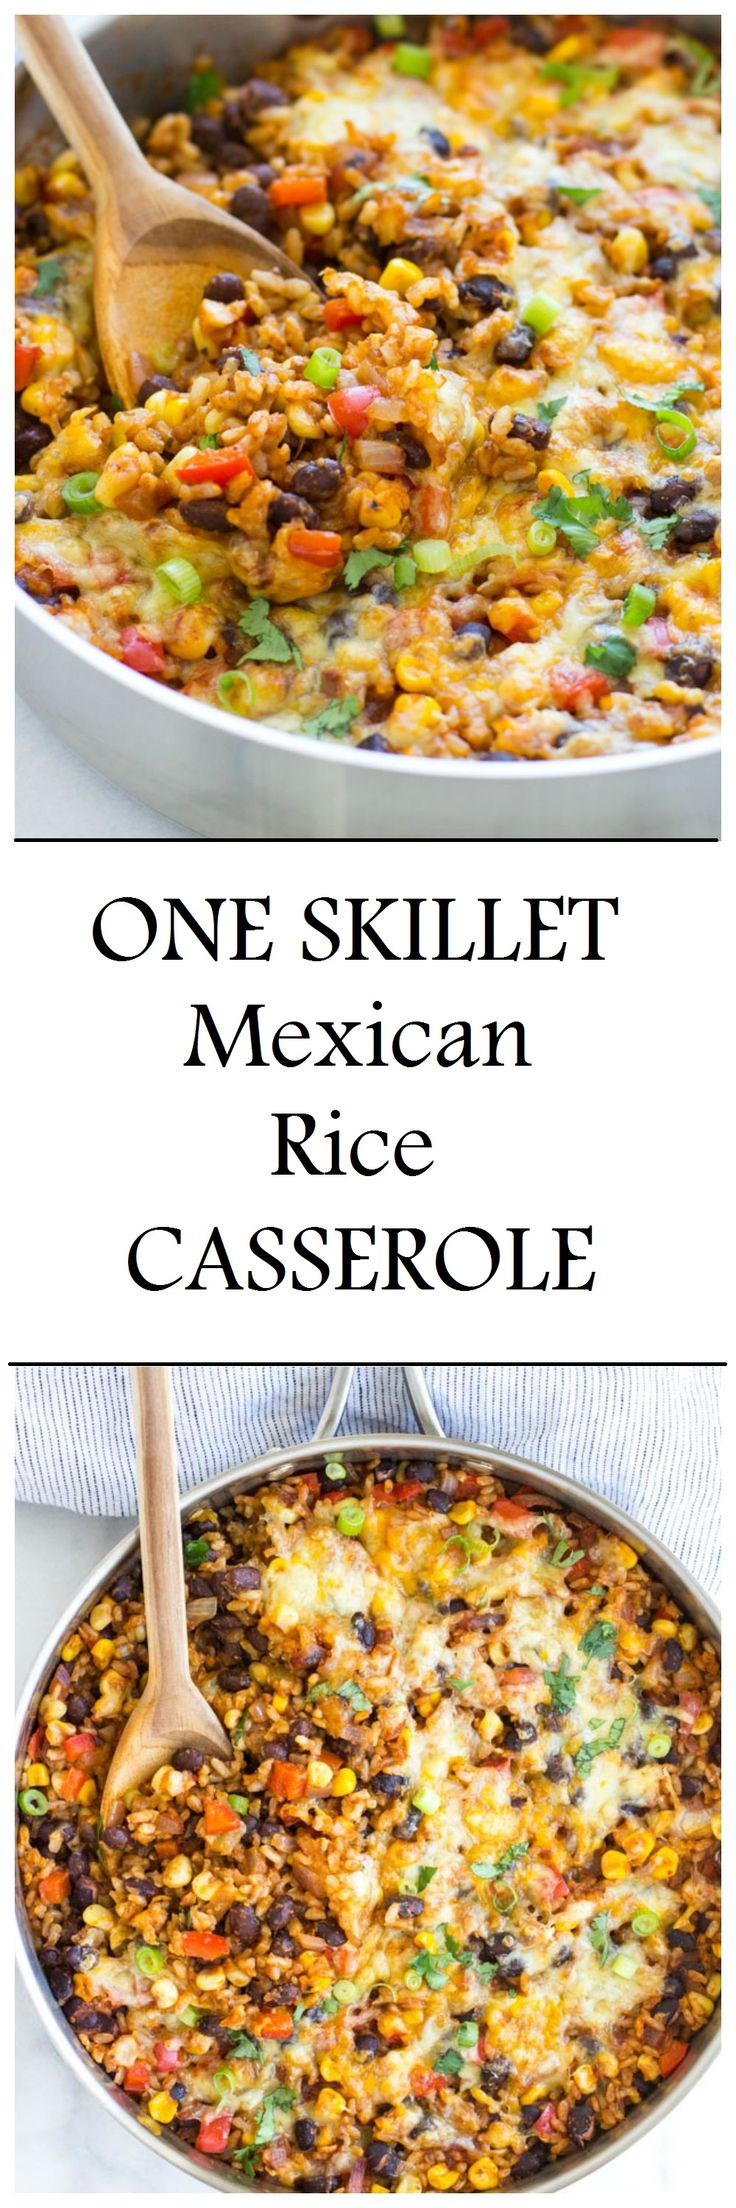 One Skillet Mexican Rice Casserole is an easy option for dinner with almost zero clean up! It's gluten-free and can easily be made vegan too! Have I told you guys how much I love Mexican food? If you couldn't tell by now, it's my jam. In fact, some of my favorite recipes on this site …